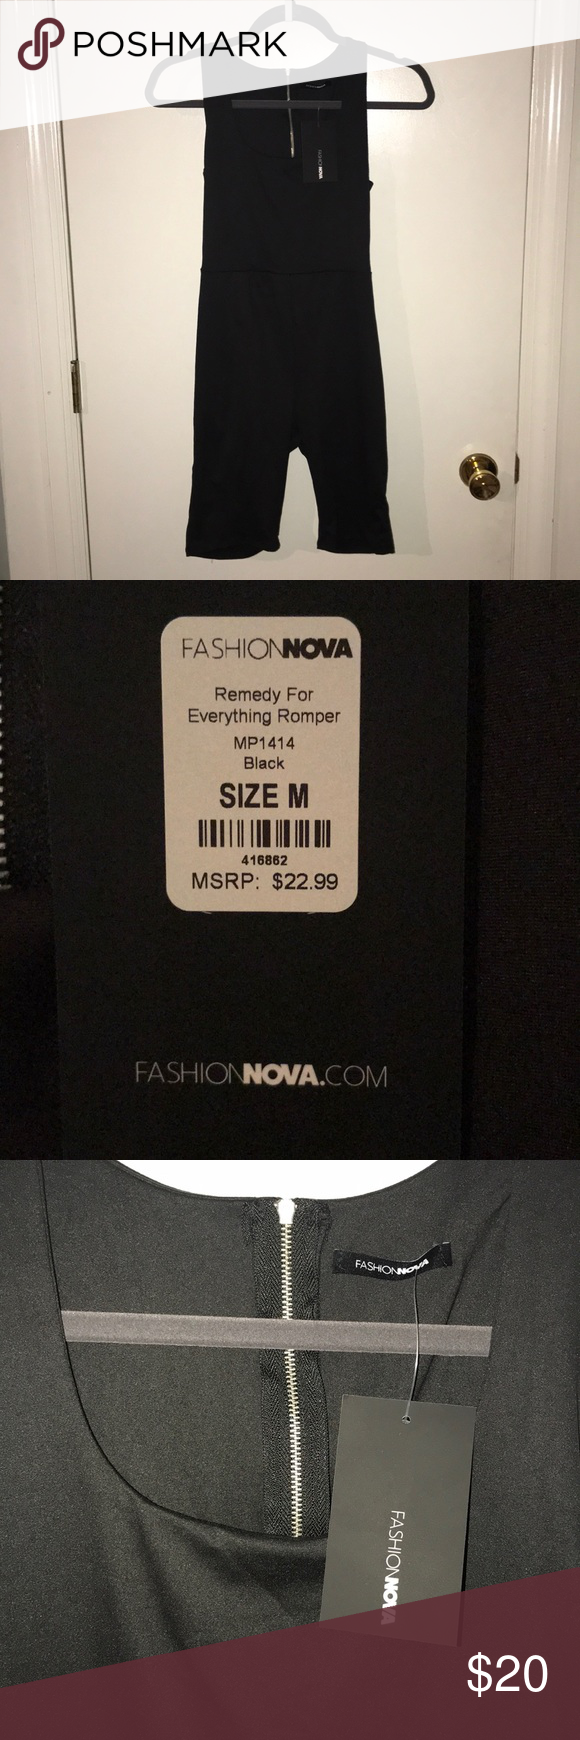 dcd4d5955d76 Fashion Nova Remedy For Everything Black Romper Fashion Nova Black Remedy  For Everything Romper with zipper